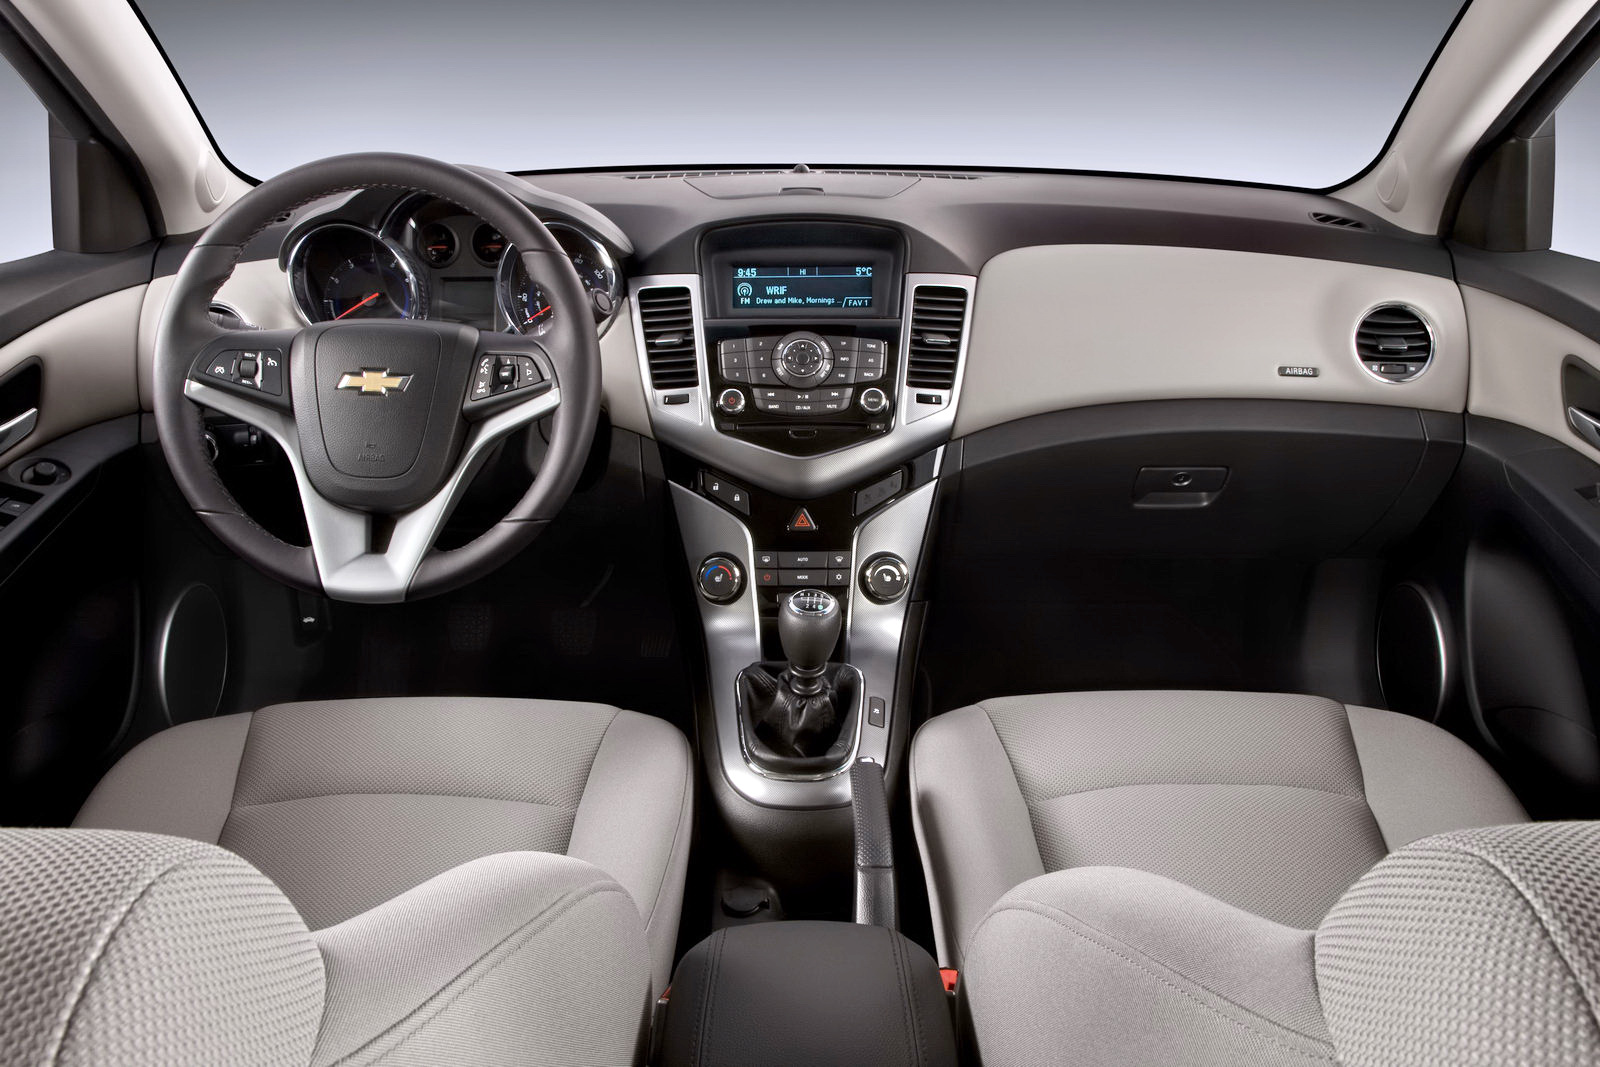 Cruze chevy cruze 2014 interior : 2011 Chevrolet Cruze | car to ride